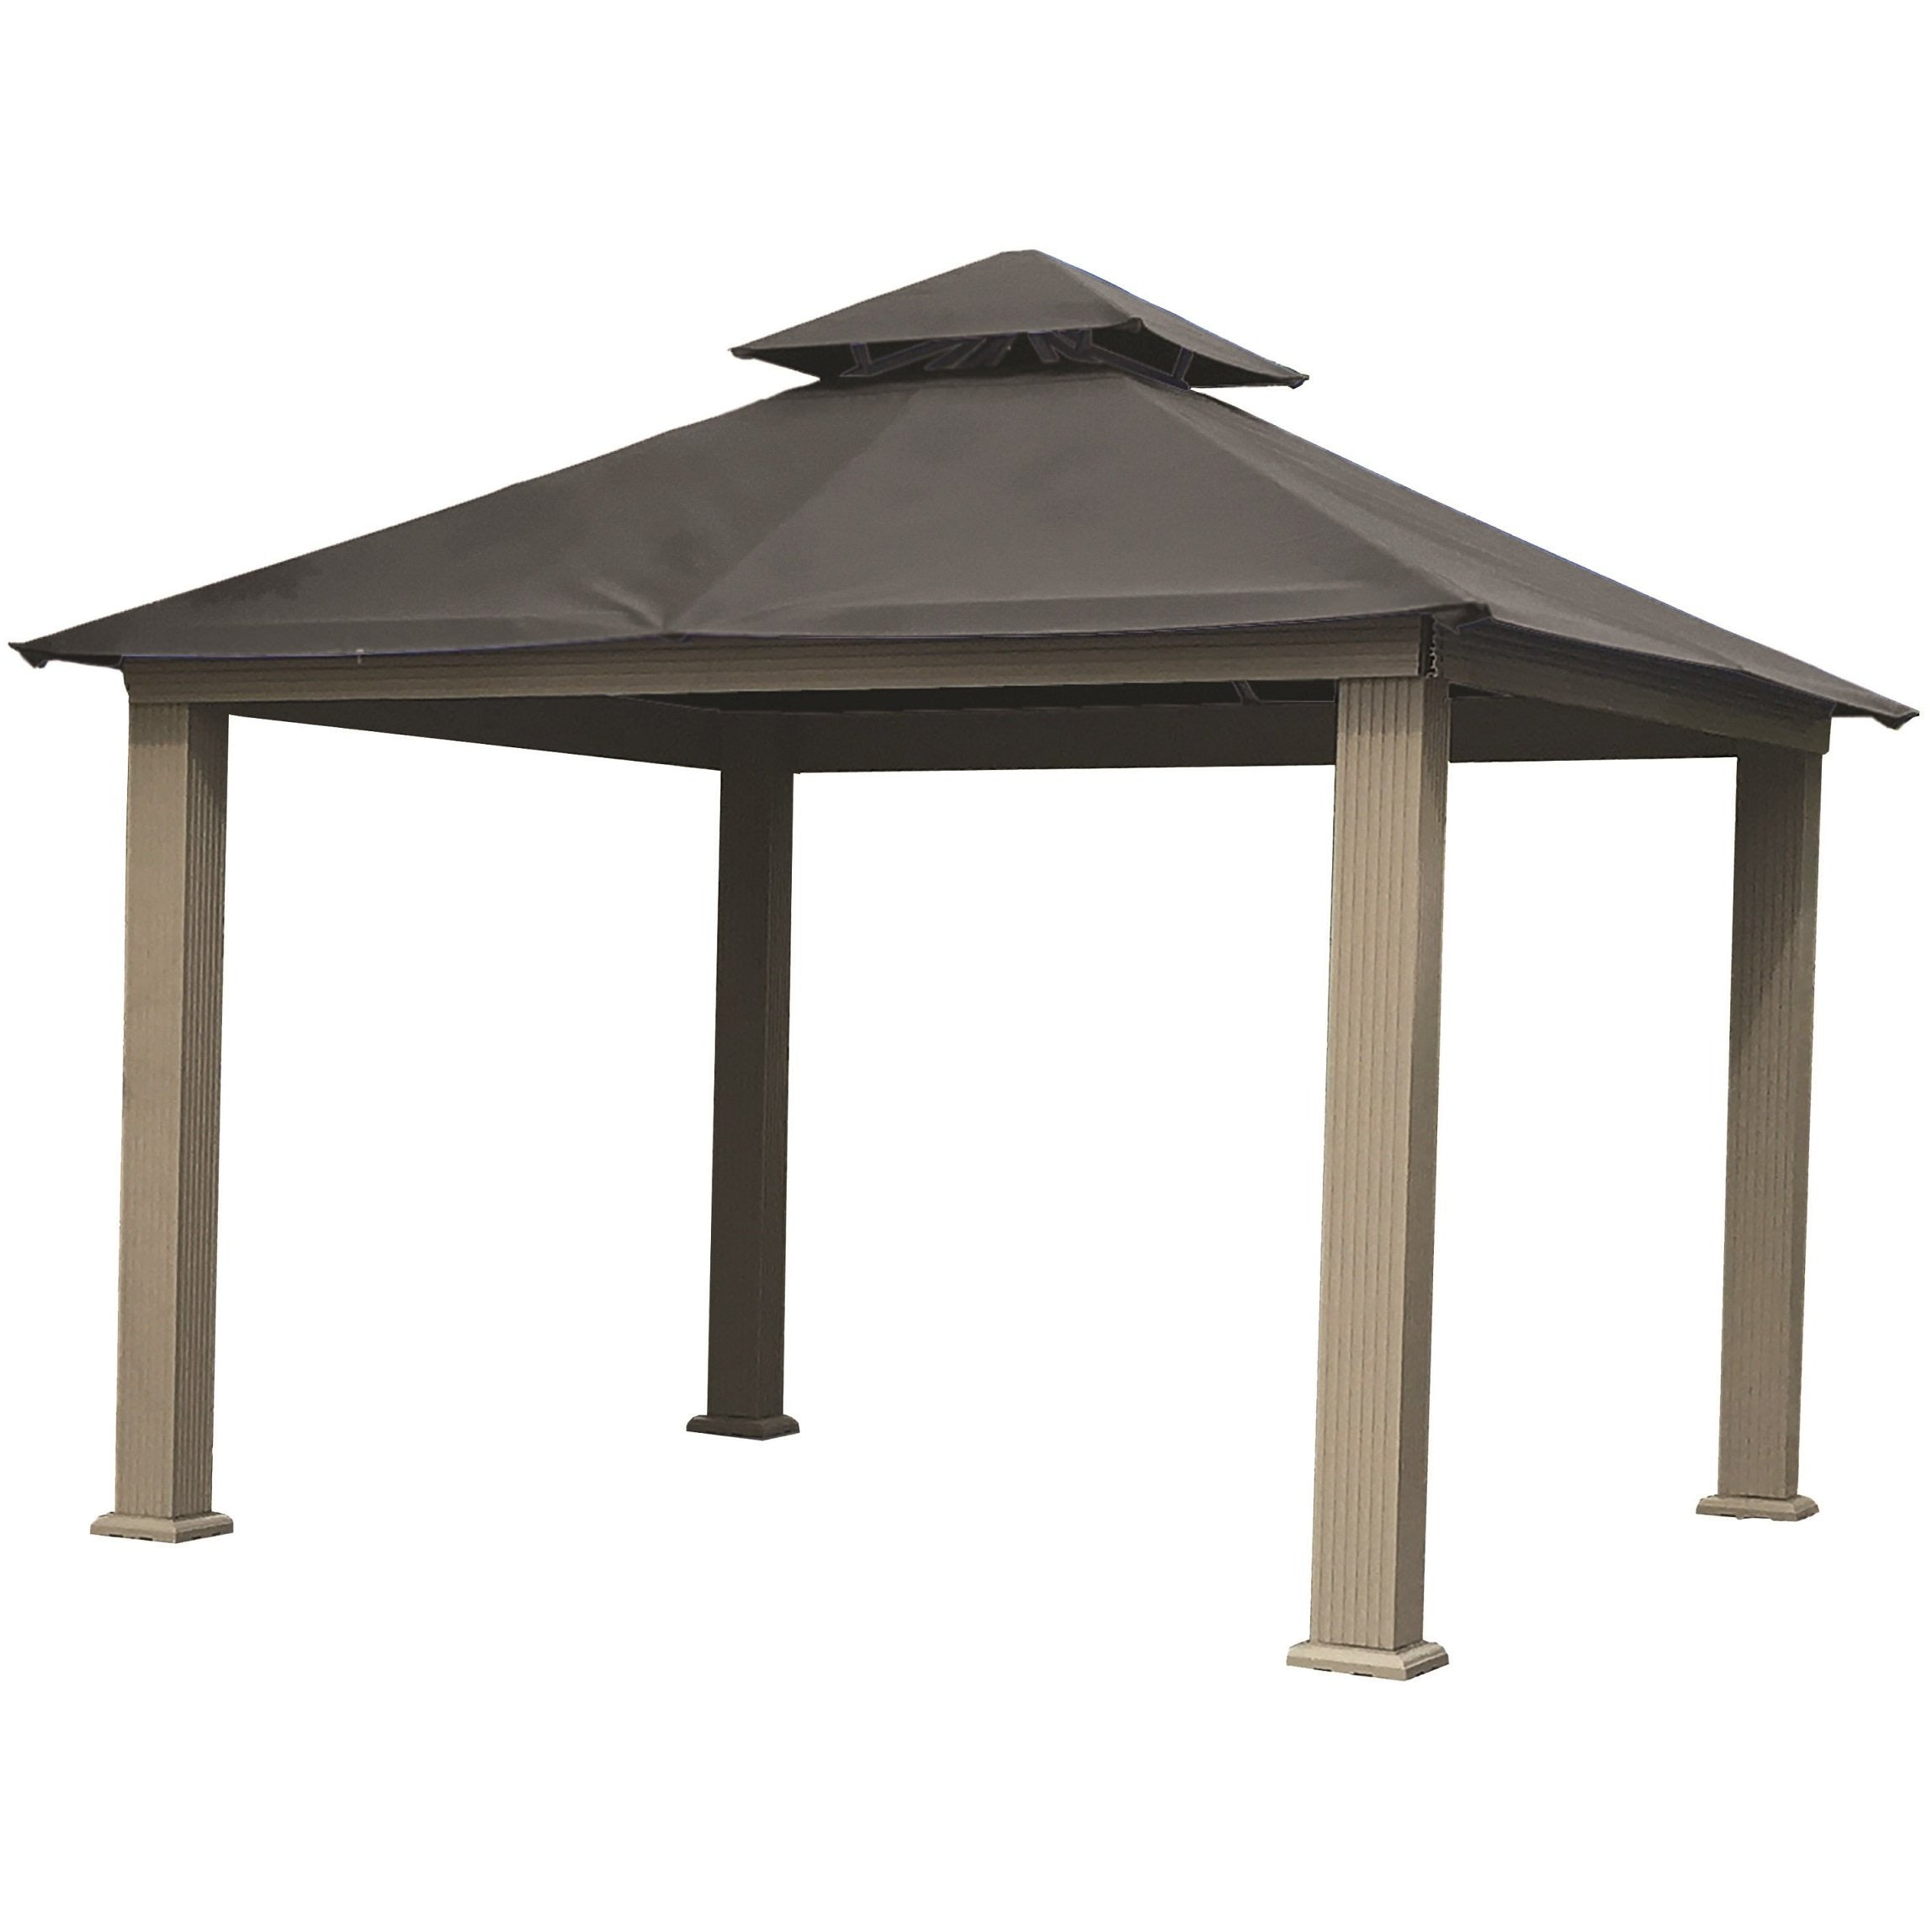 ... Riverstone Industries Acacia 14u0027 x 14u0027 Gazebo with Sundura Canopy ...  sc 1 st  Cozy Shed & Riverstone Industries Acacia 14u0027 x 14u0027 Gazebo with Sundura Canopy ...